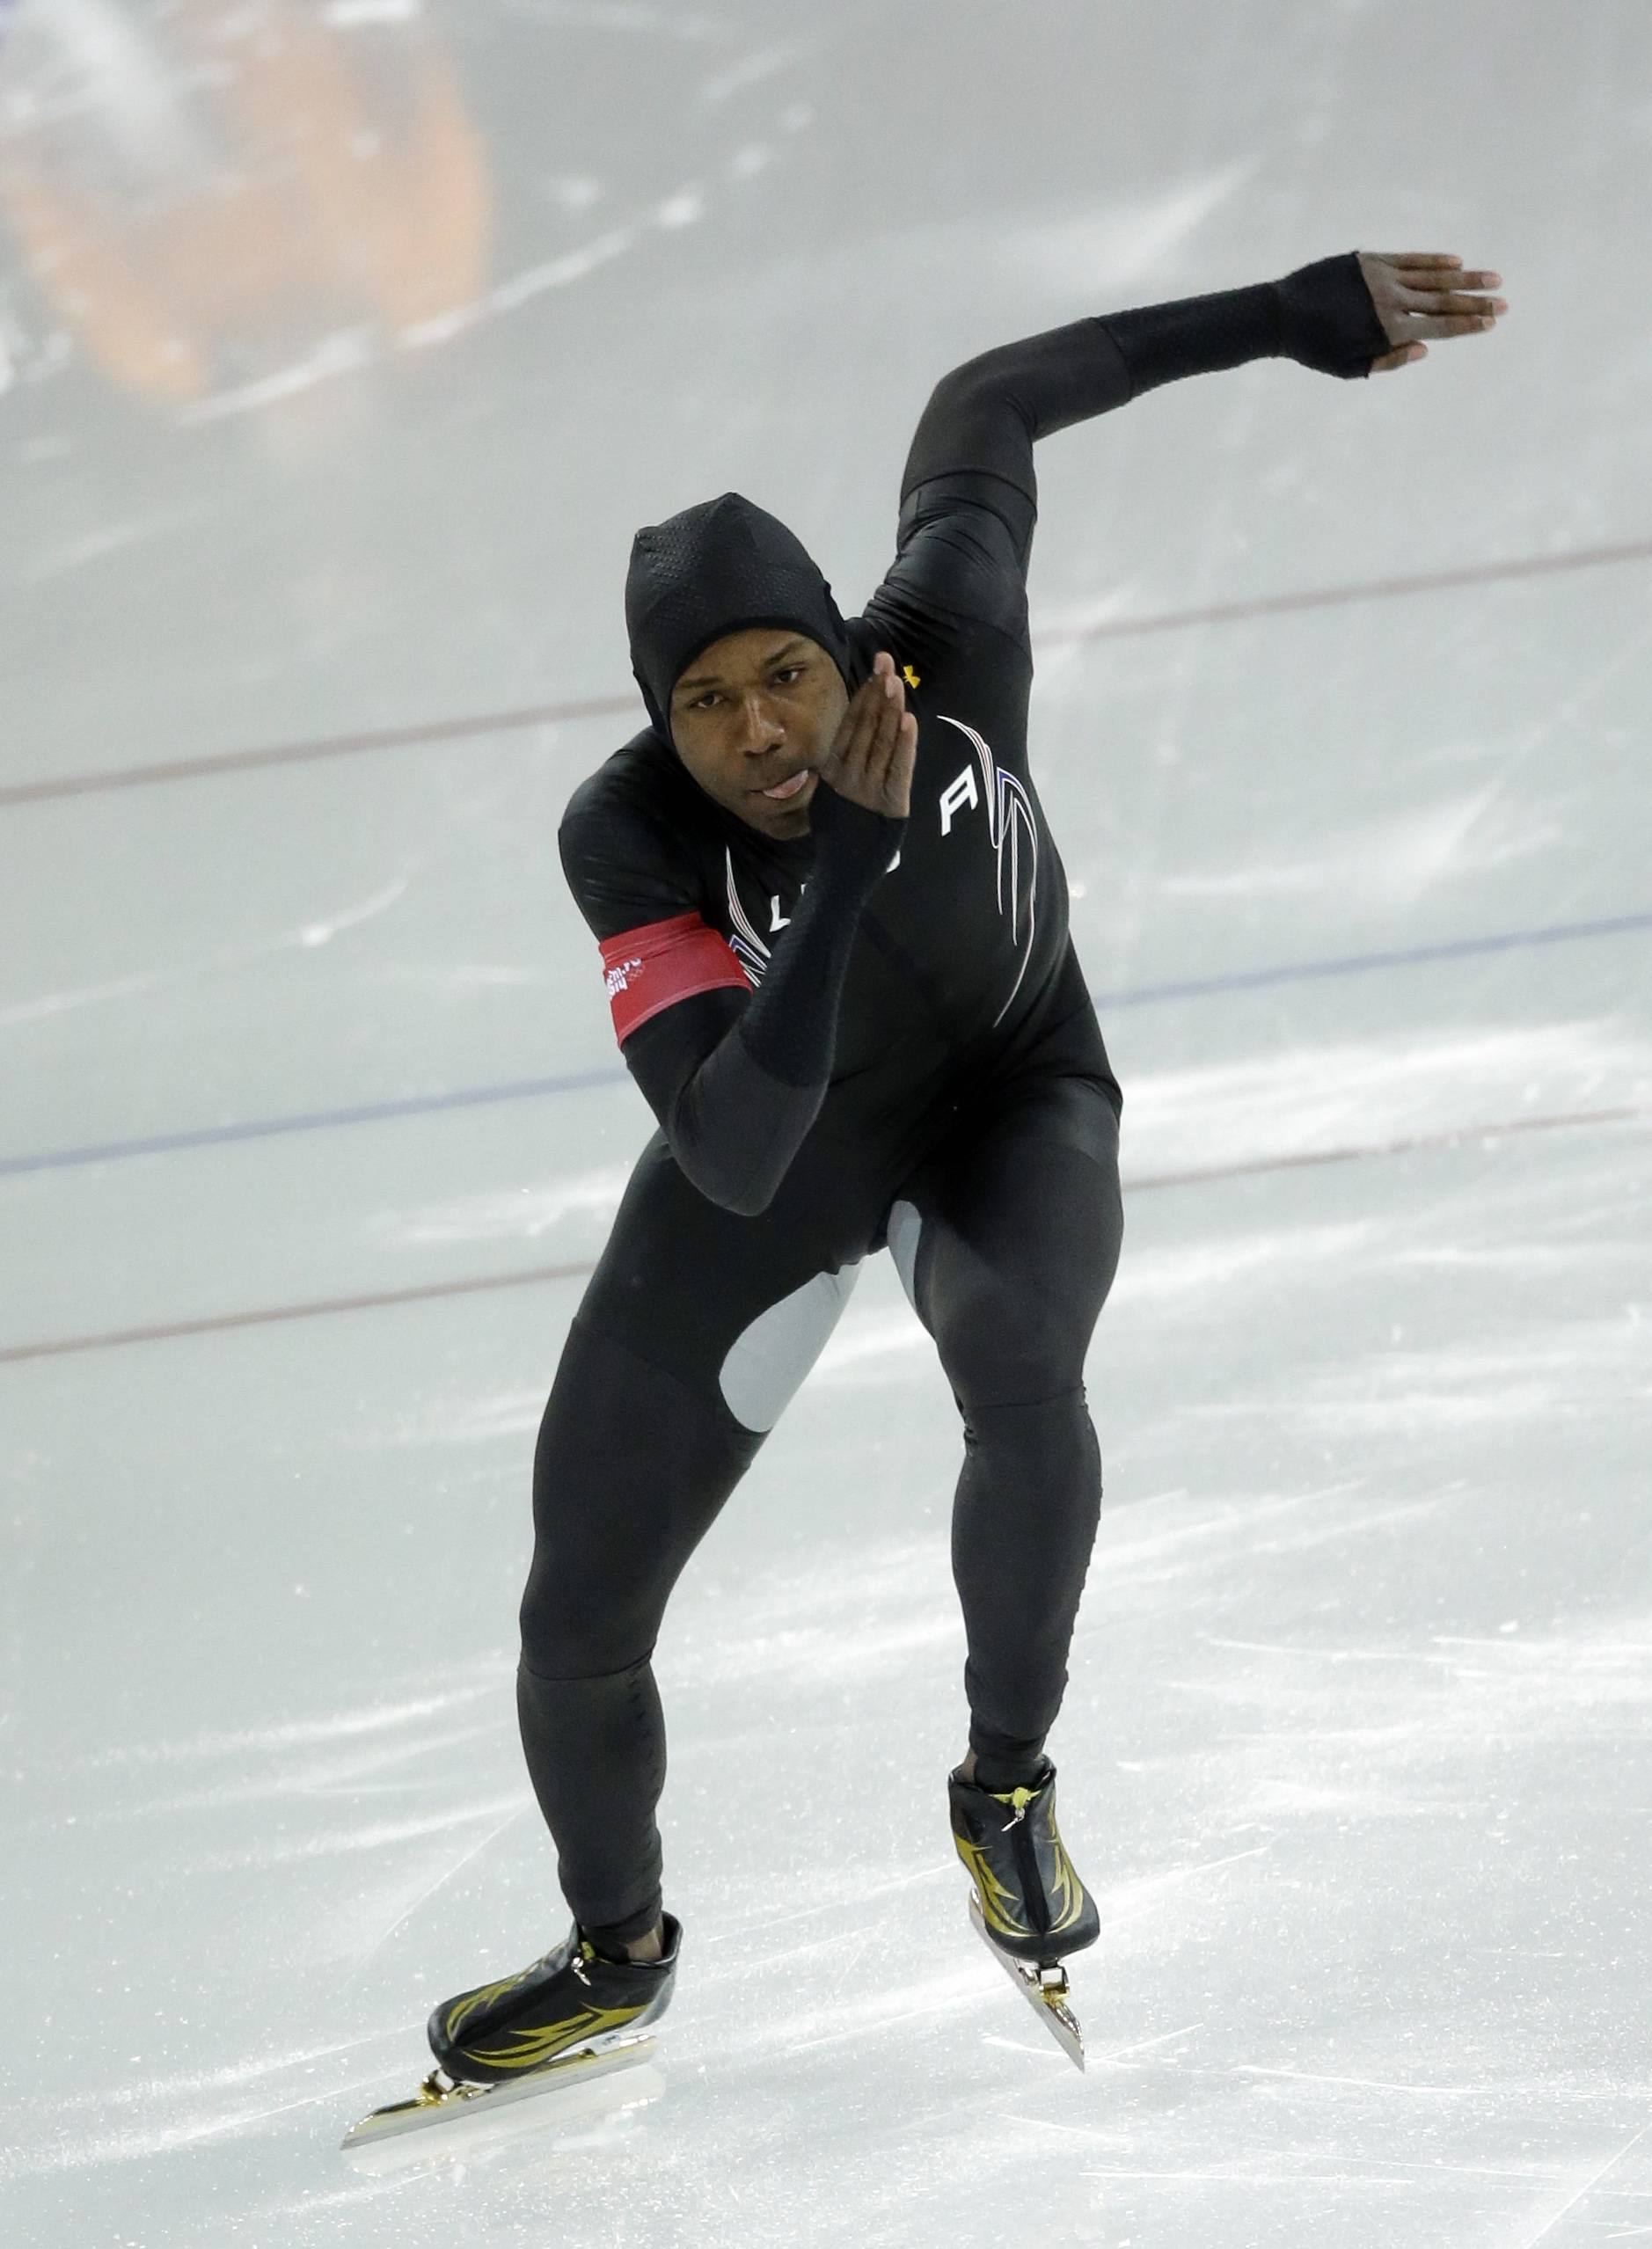 American Shani Davis, who has won 2 golds and a pair of silver medals in his Olympic career, has been shut out at the Sochi Winter Games. The United States said the team is dumping the new high-tech speedskating suits that made their debut in the Russia Games.